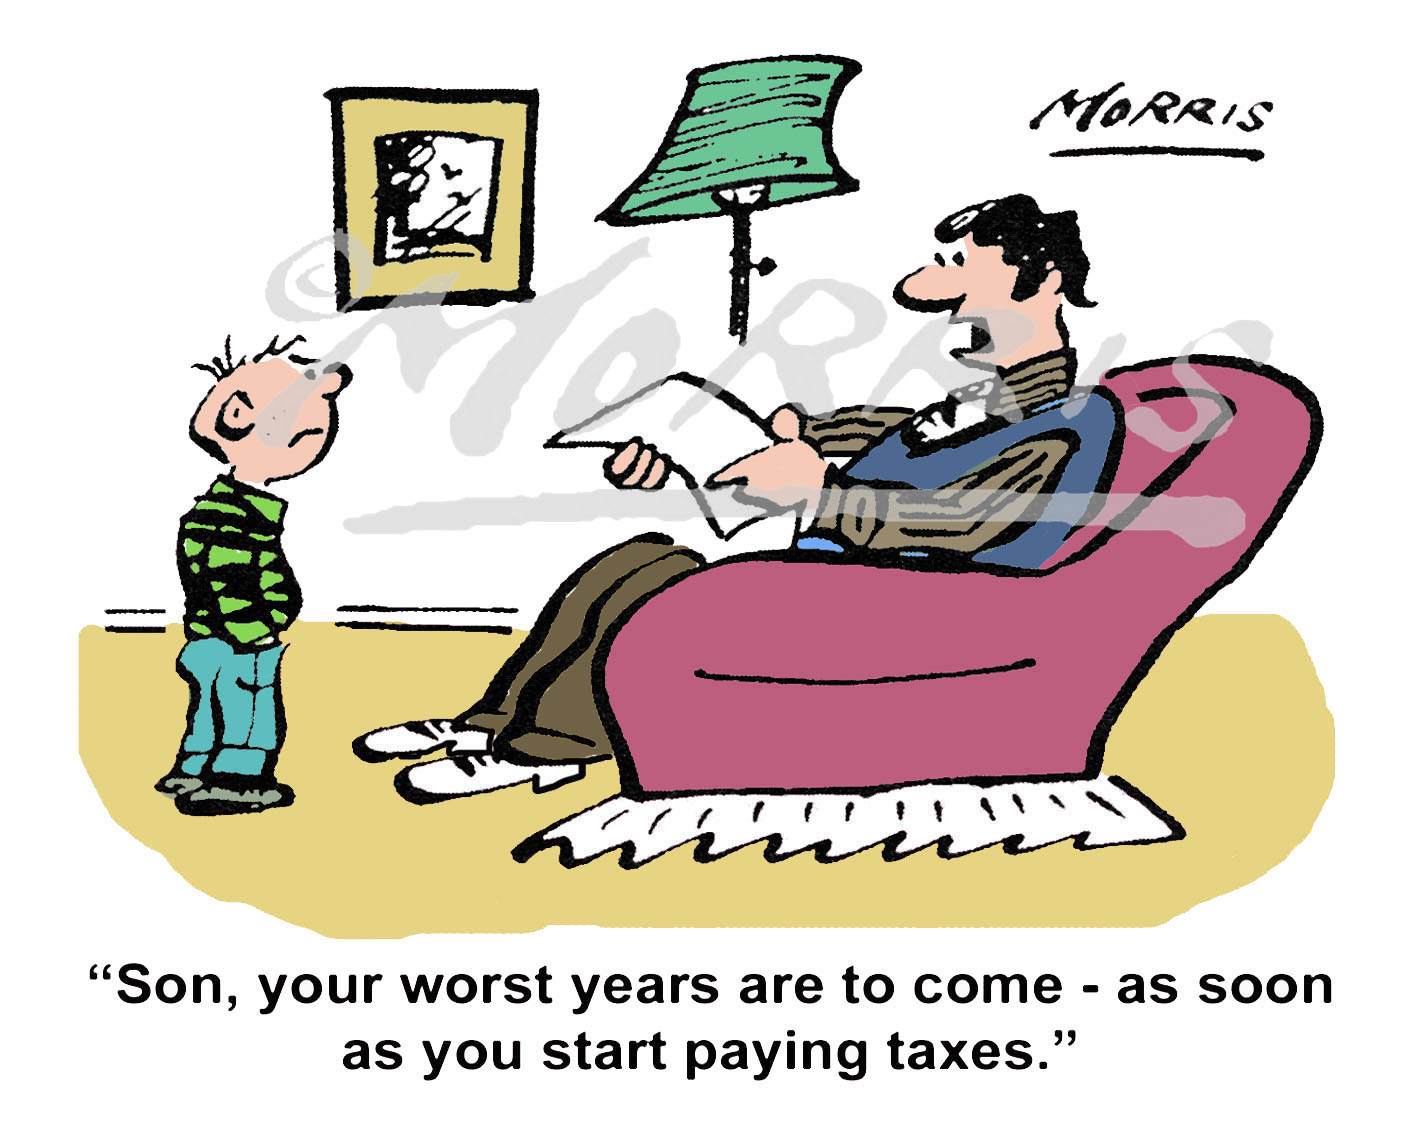 Personal finance cartoon, tax cartoon – Ref: 7492col